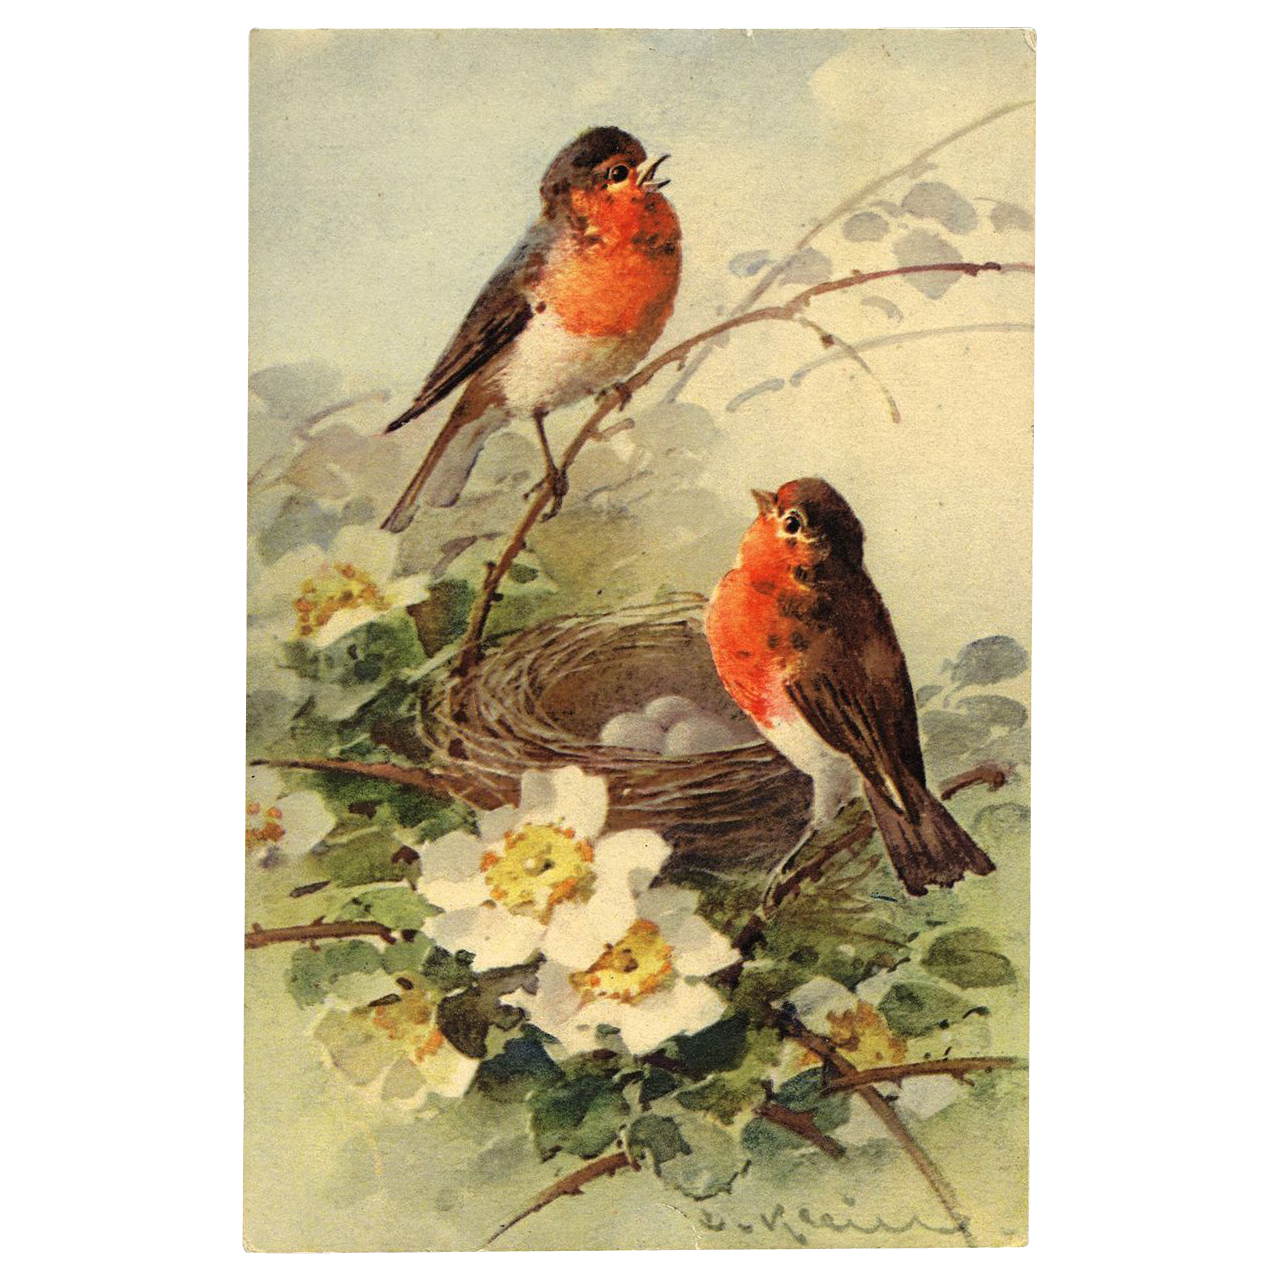 Artist Signed KLEIN Birds Nest Eggs 1911 Postcard LOVE note